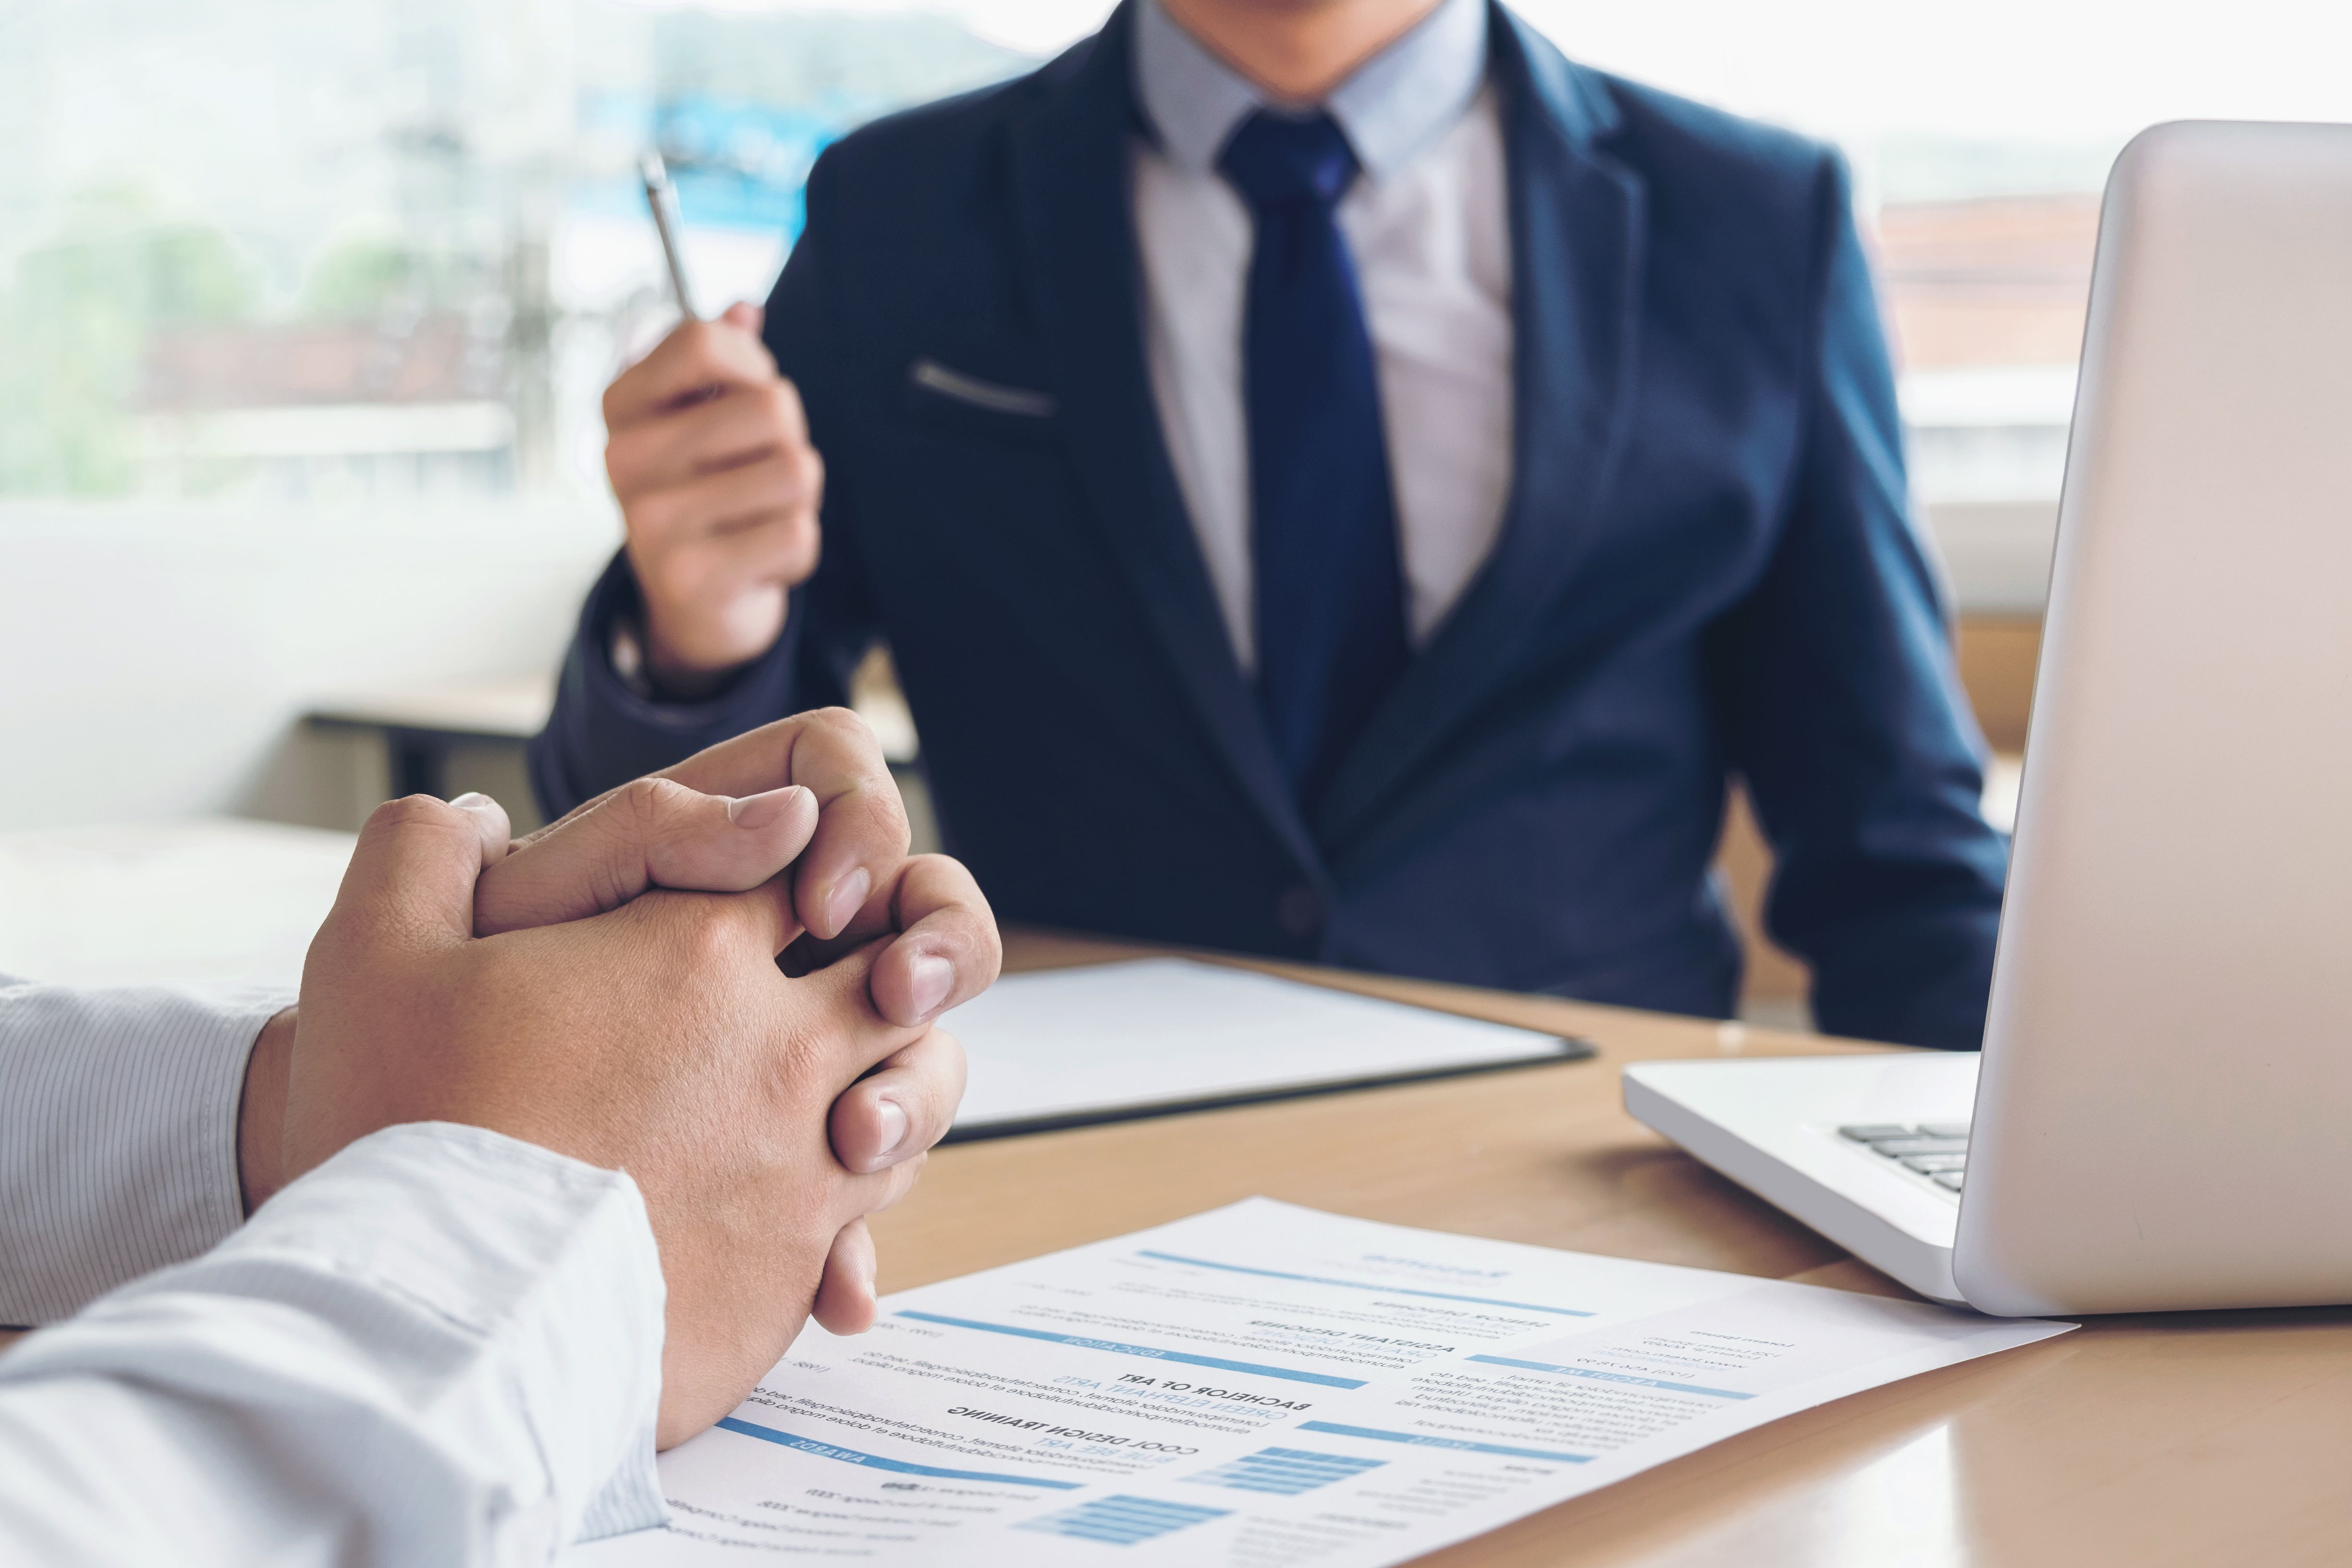 how to answer interview questions about working in sales